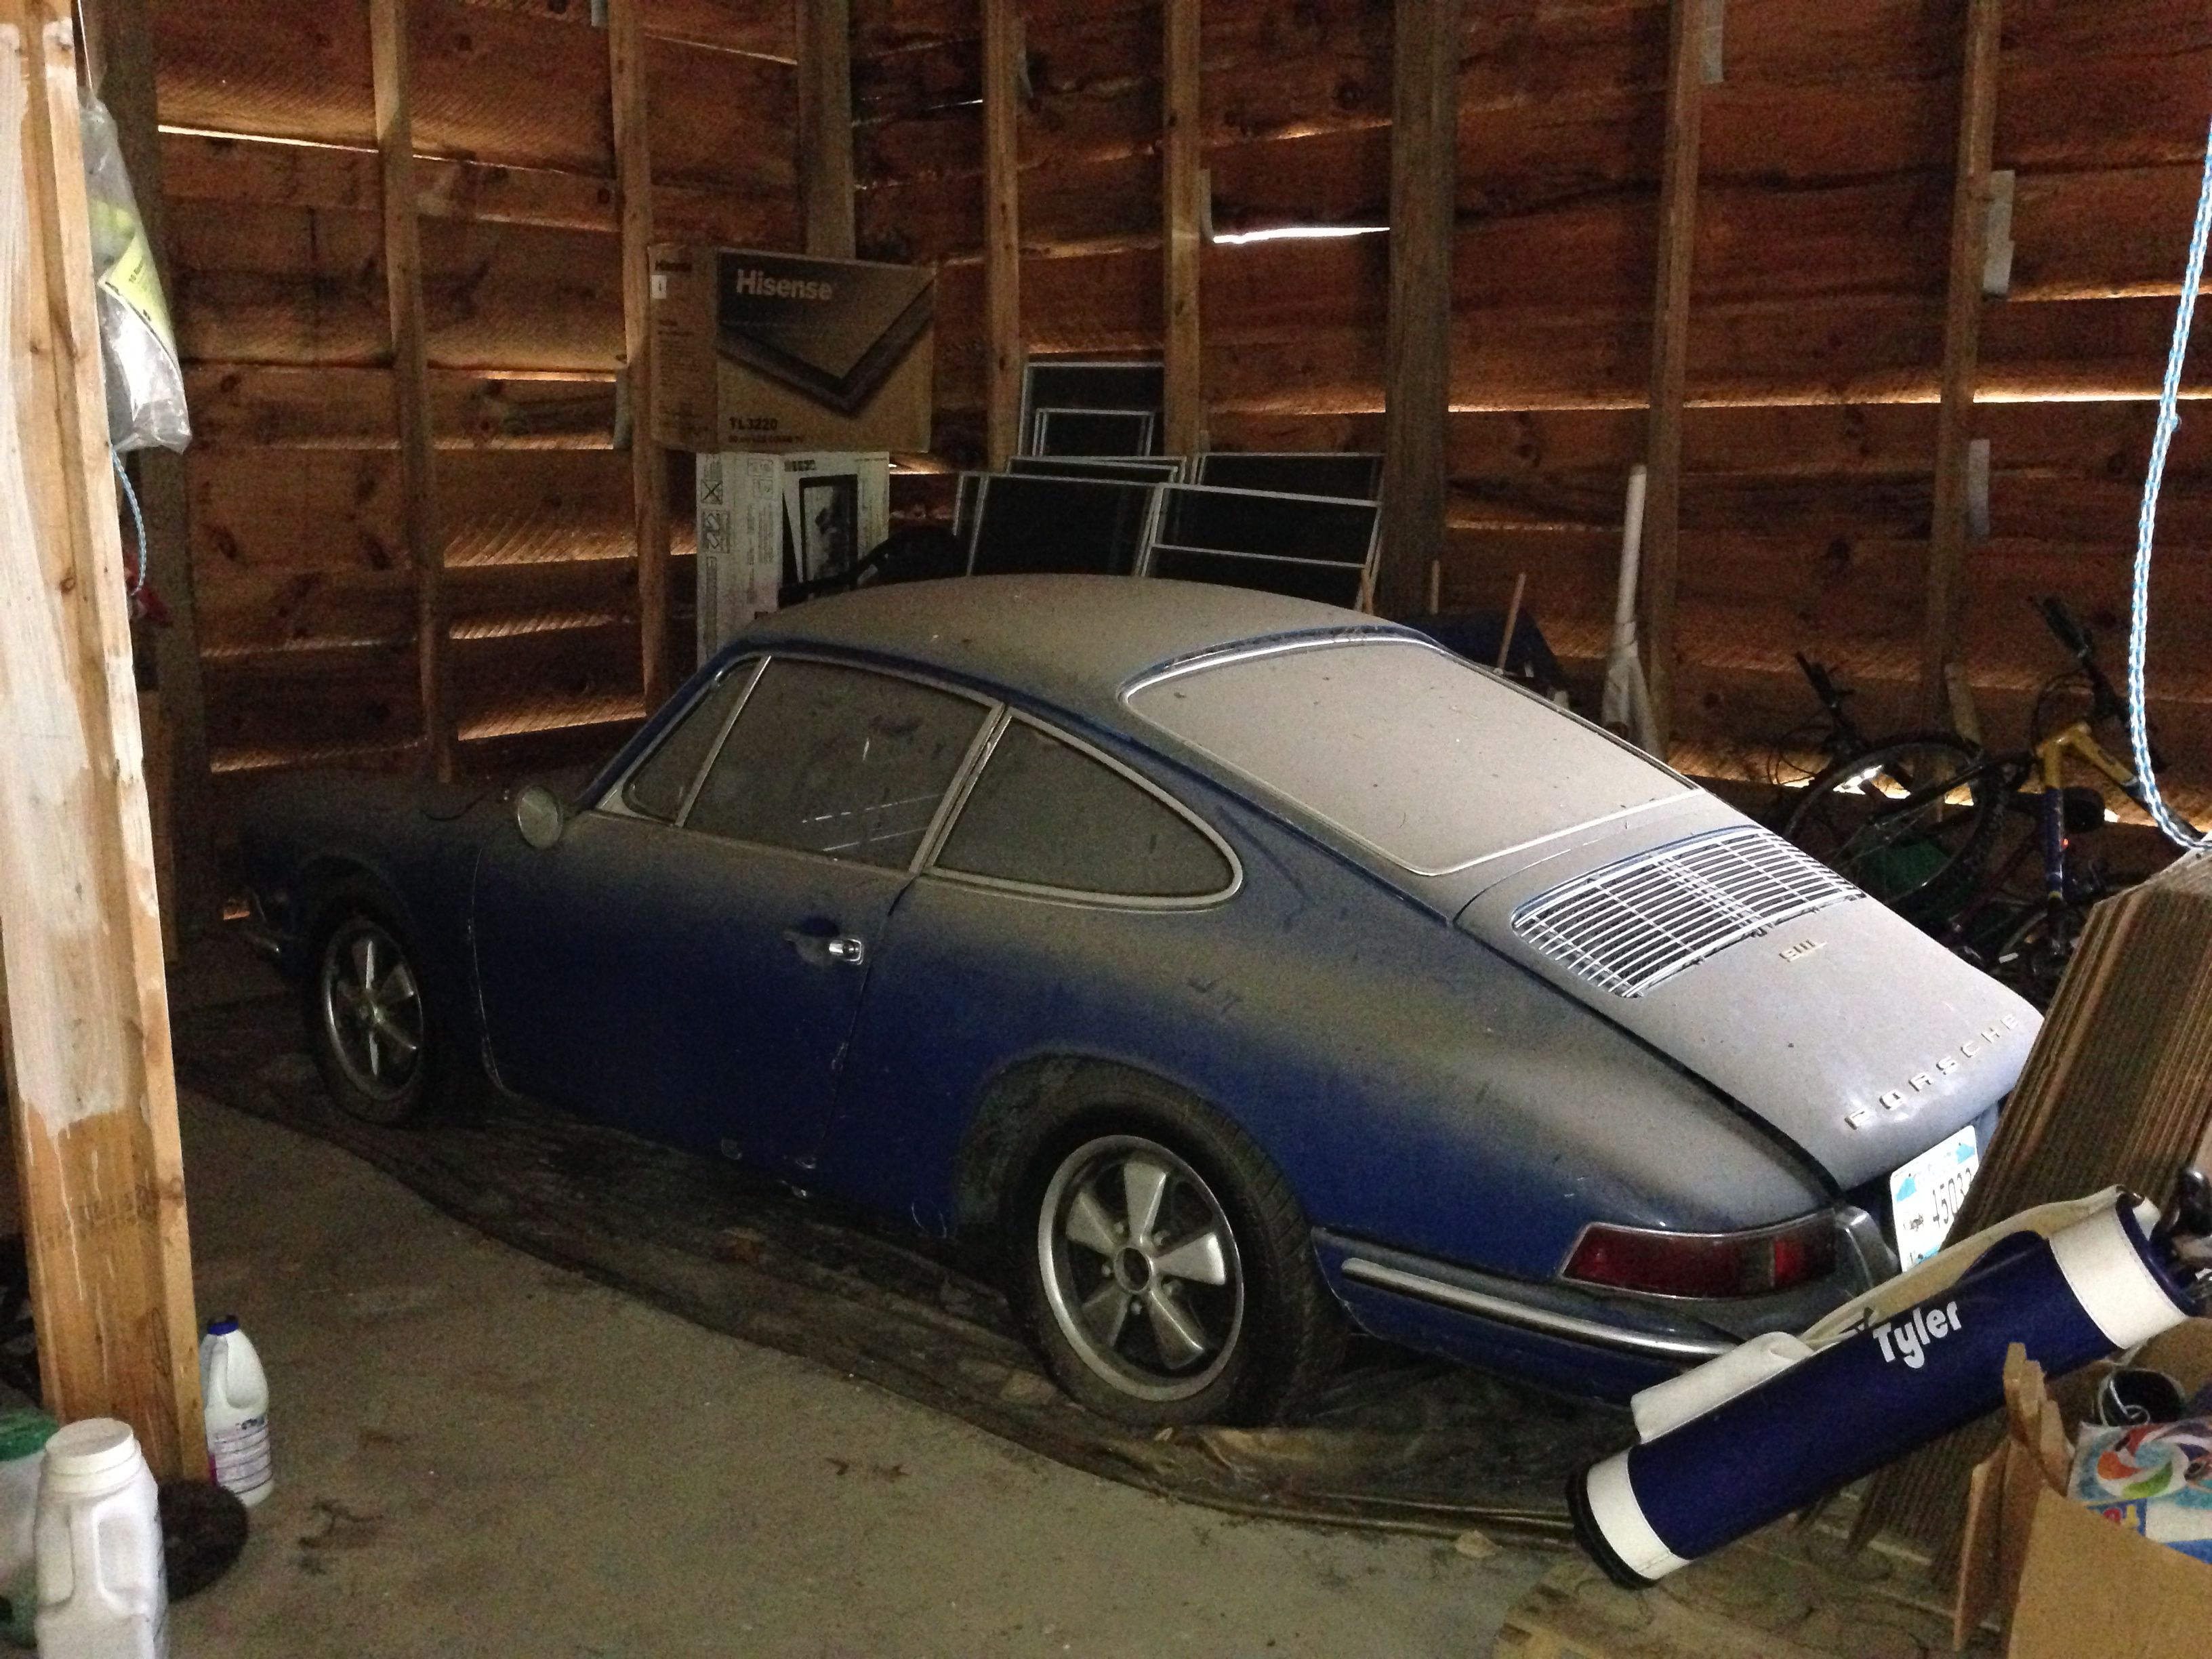 barn finds - Google Search | Car finds | Pinterest | Barn finds ...